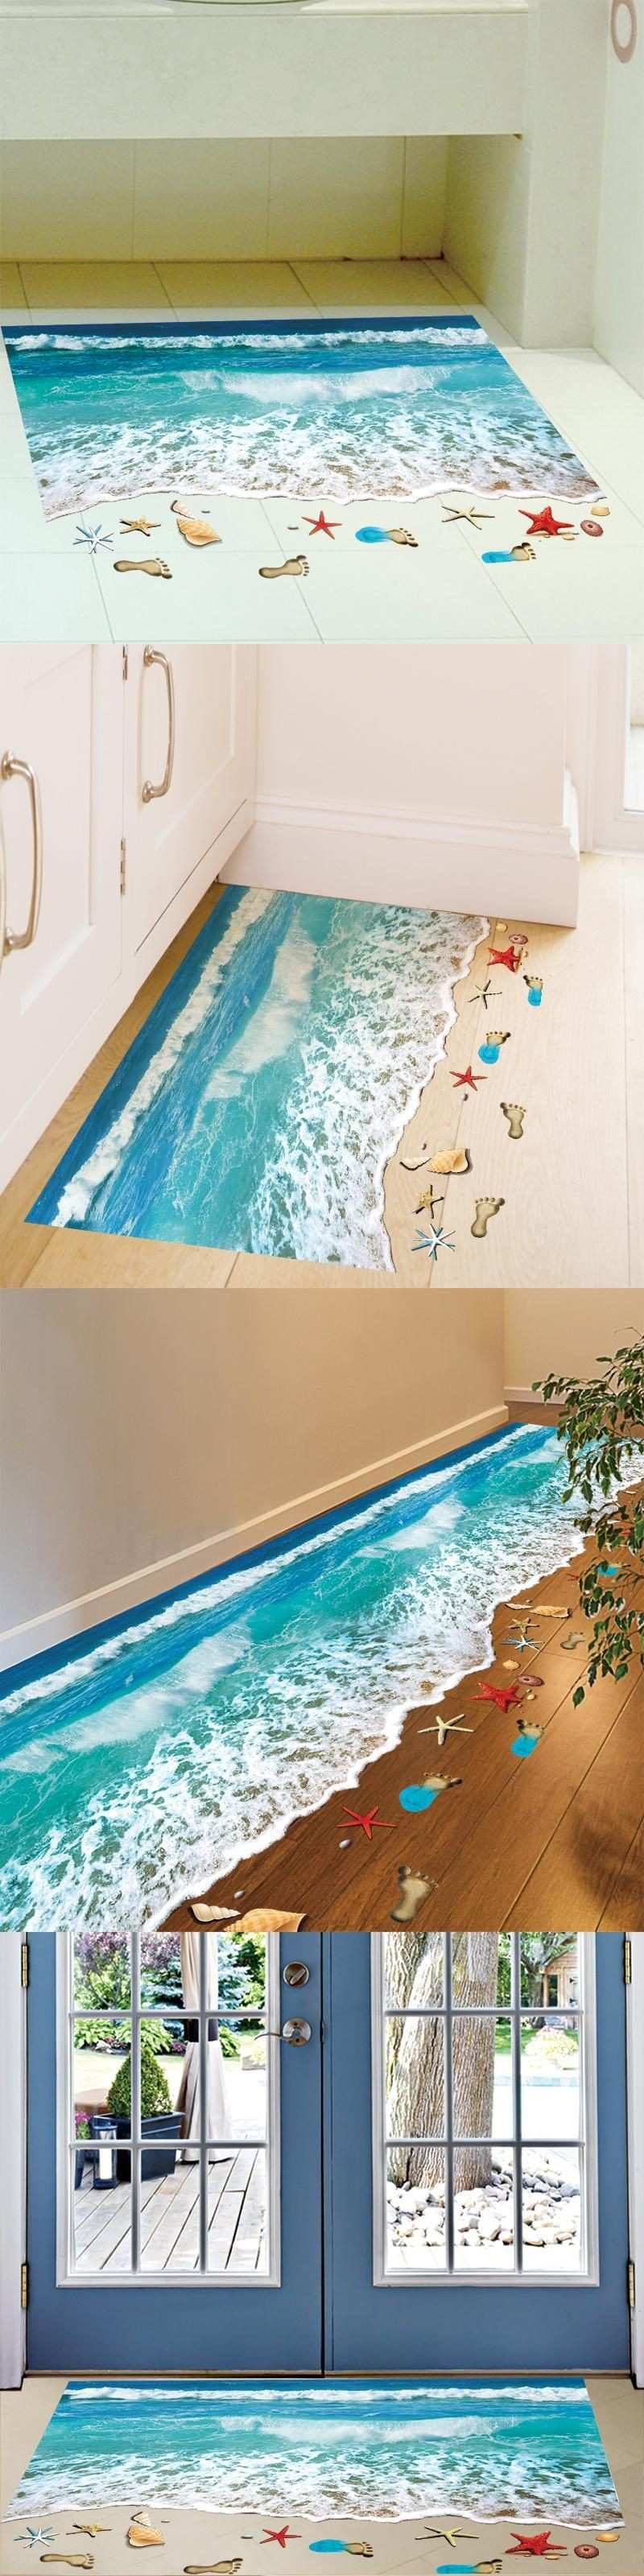 SHIJUEHEZI] Starfish Footprint Sea Beach 3D Floor Stickers Vinyl DIY